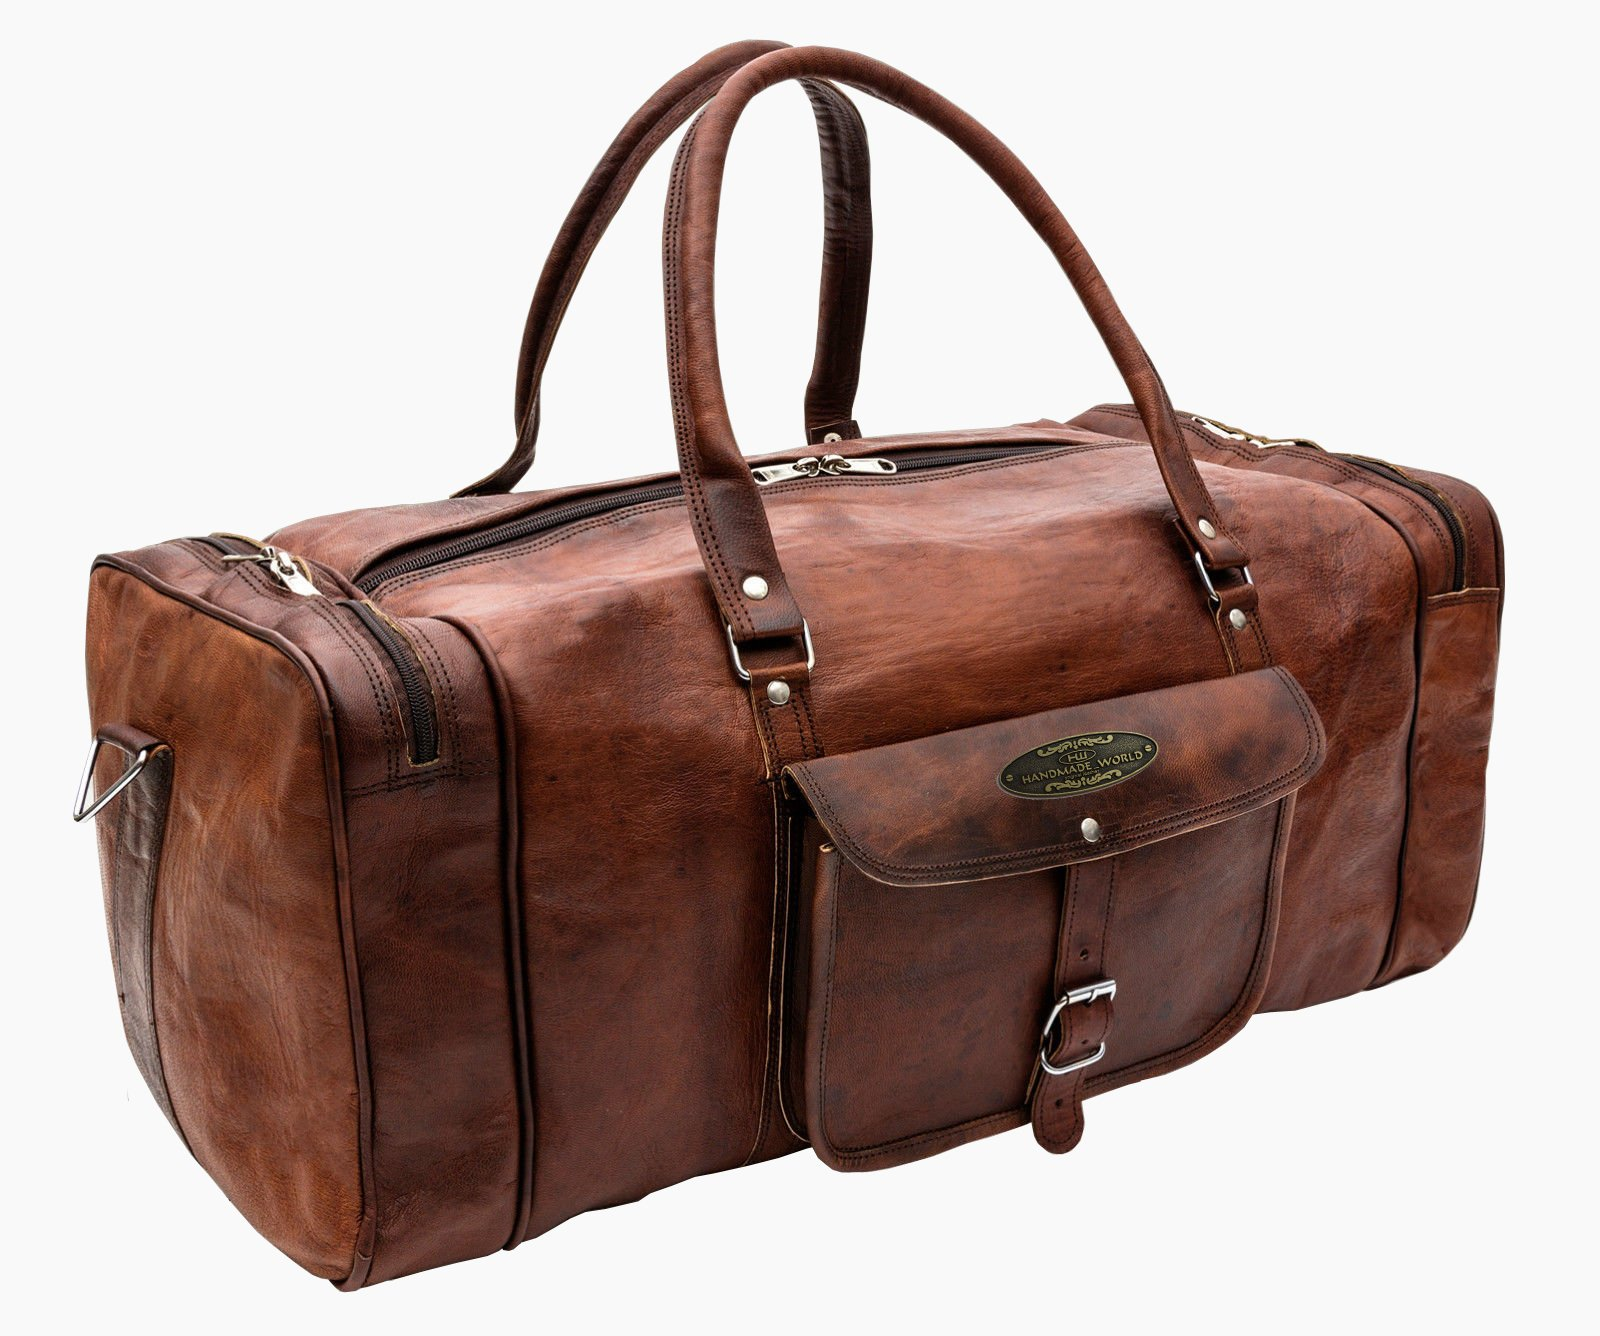 Handmade World 23'' Inch Vintage Leather Bags Luggage Duffel Large Travel Carry On Air Cabin Sports Gym Bag